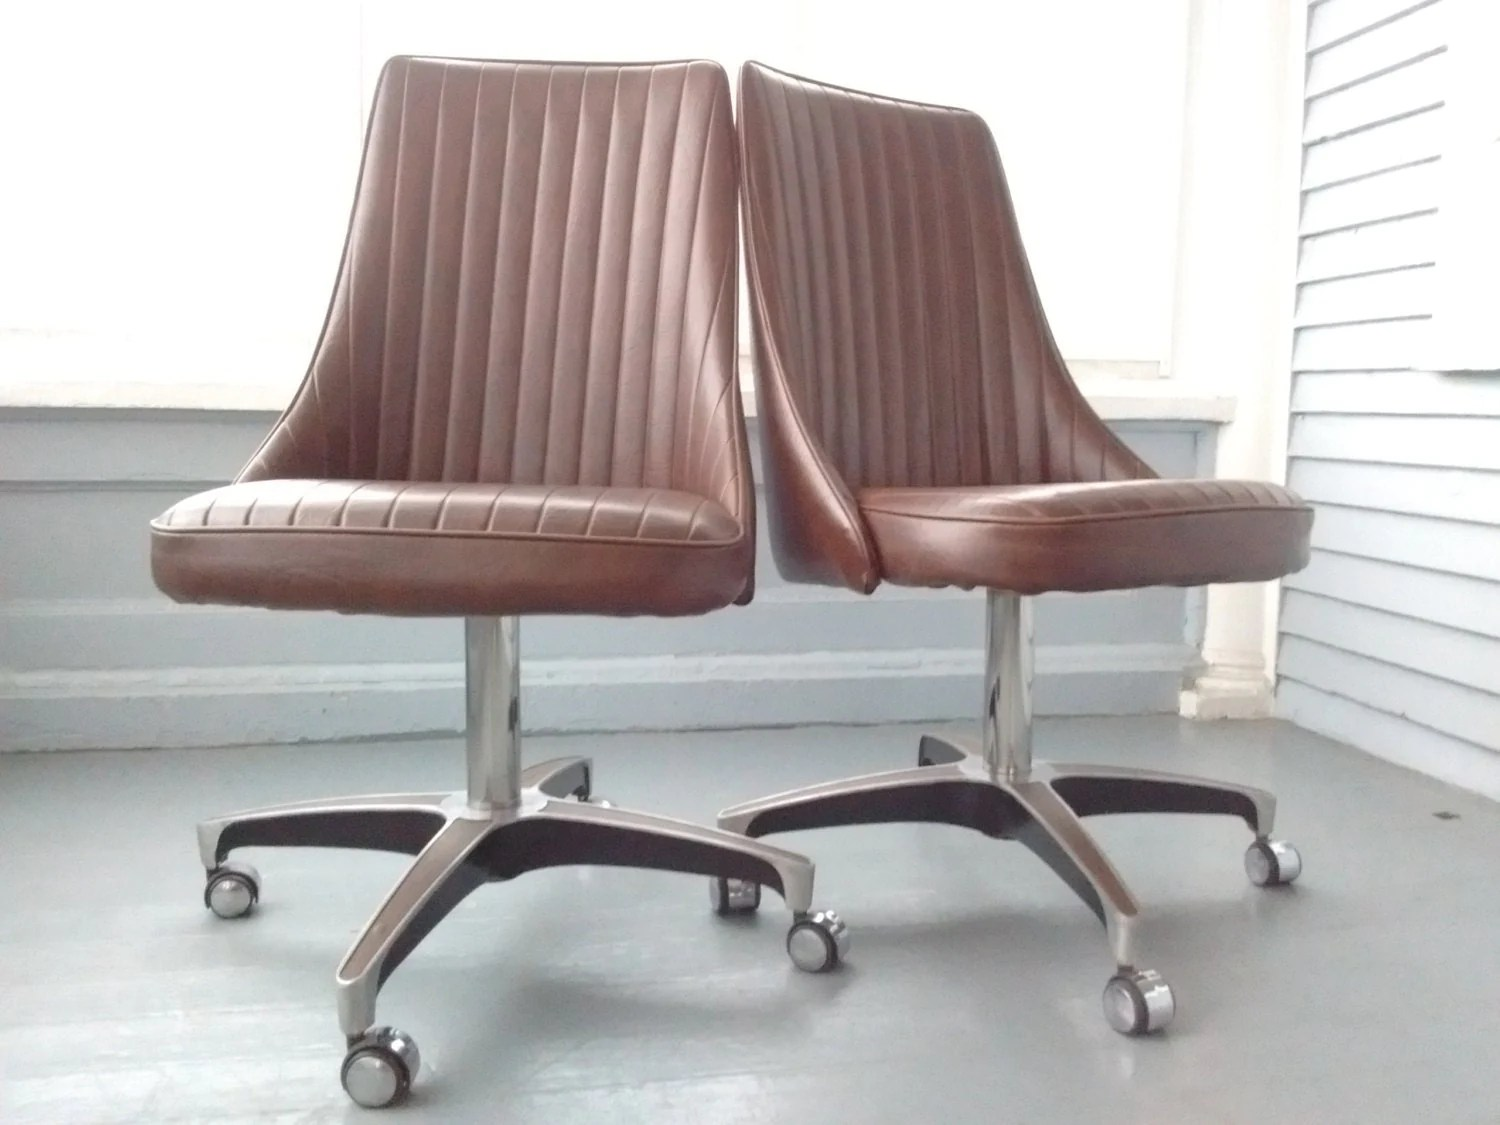 Chromcraft Chairs Sale Vintage Chromcraft Dining Chairs 70s Decor